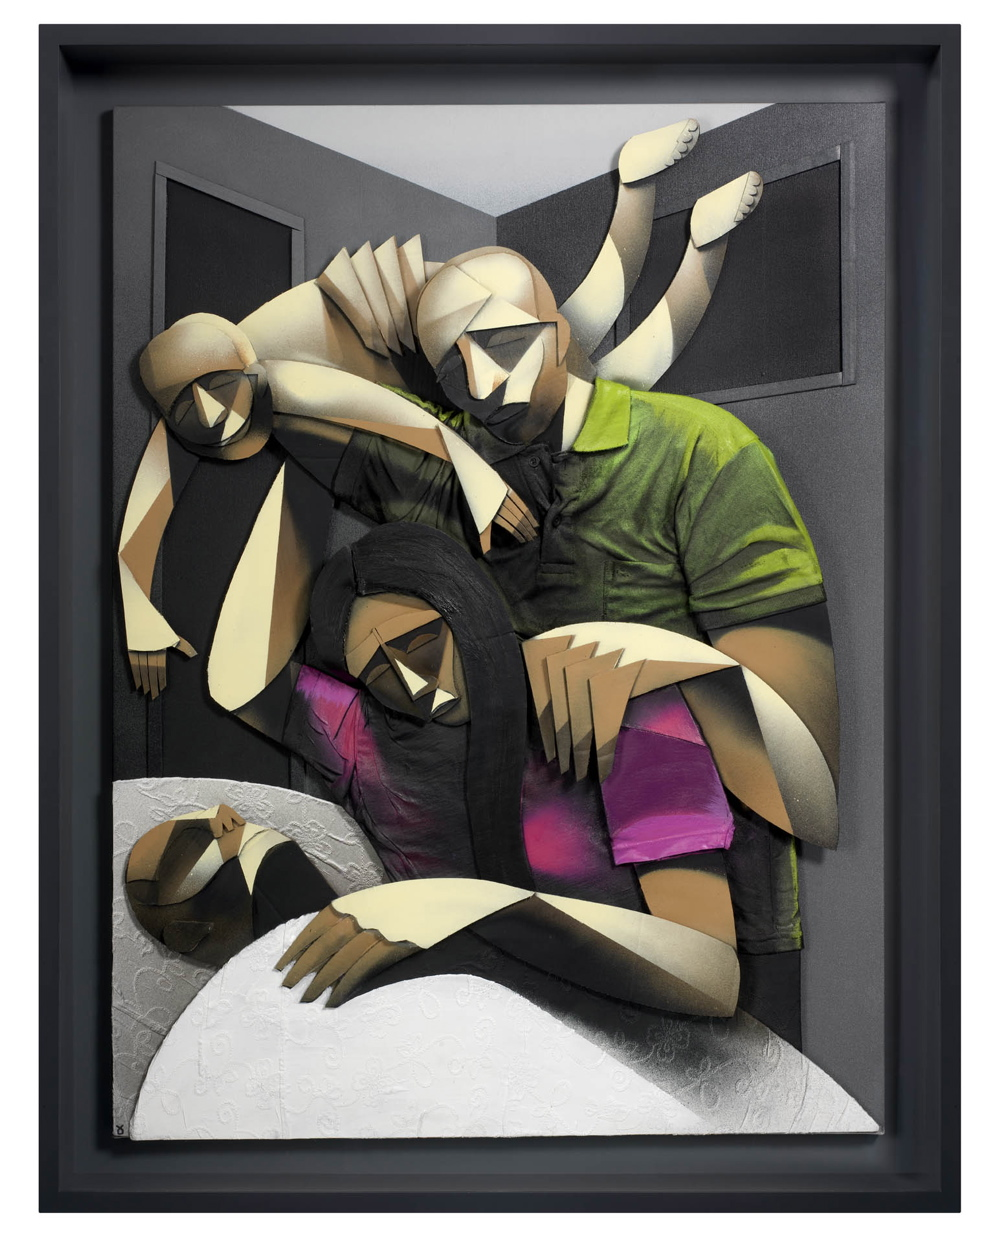 Adam Neate - Family Circle.  Photo via Elms Lester.